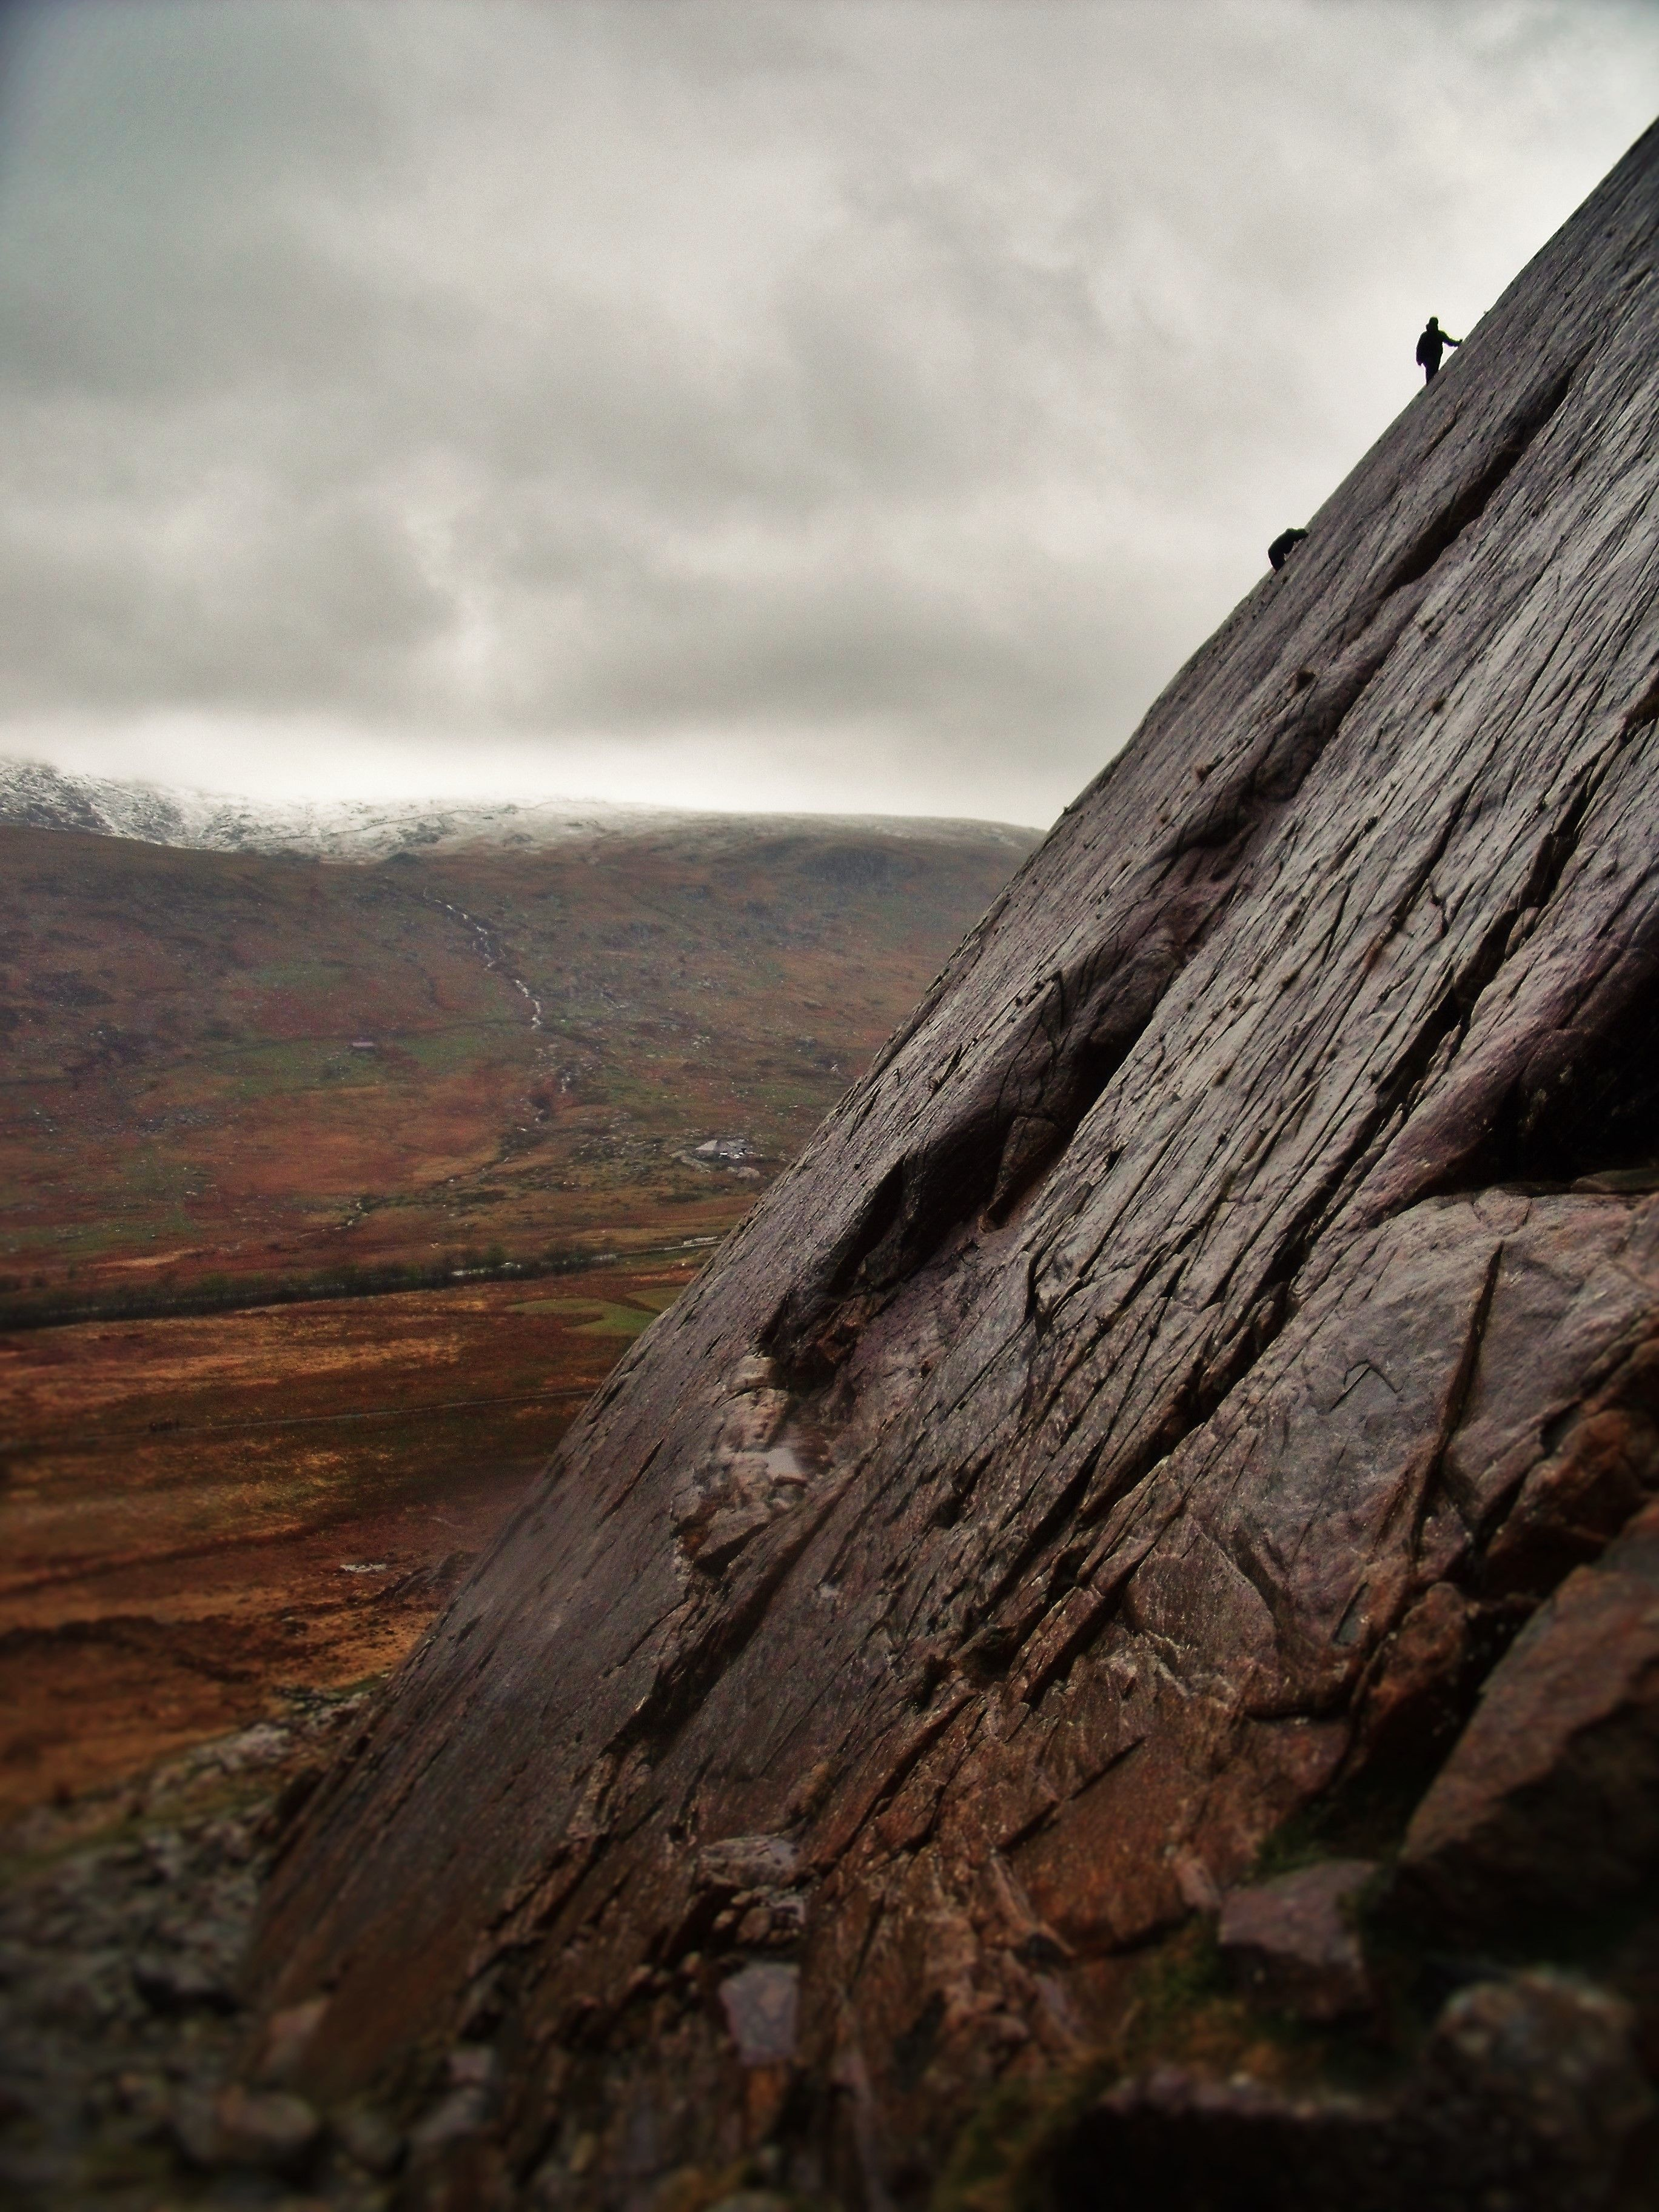 Phil and Johnny free climbing in the Glyderau Range